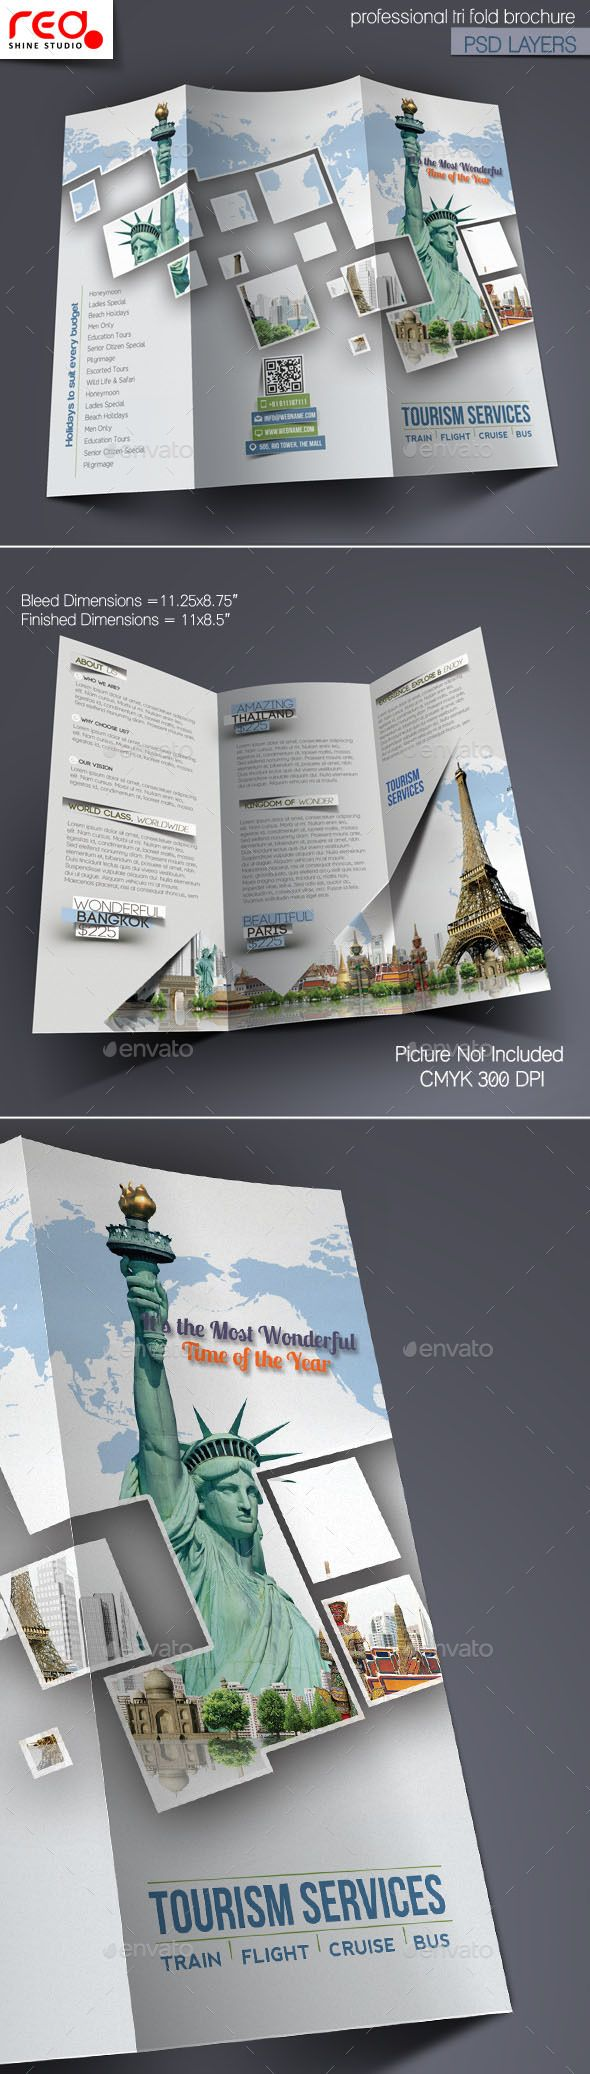 HD Decor Images » Tourism Service Trifold Brochure Template  CS  8 5x11  ad  adventure     Tourism Service Trifold Brochure Template  CS  8 5x11  ad  adventure poster